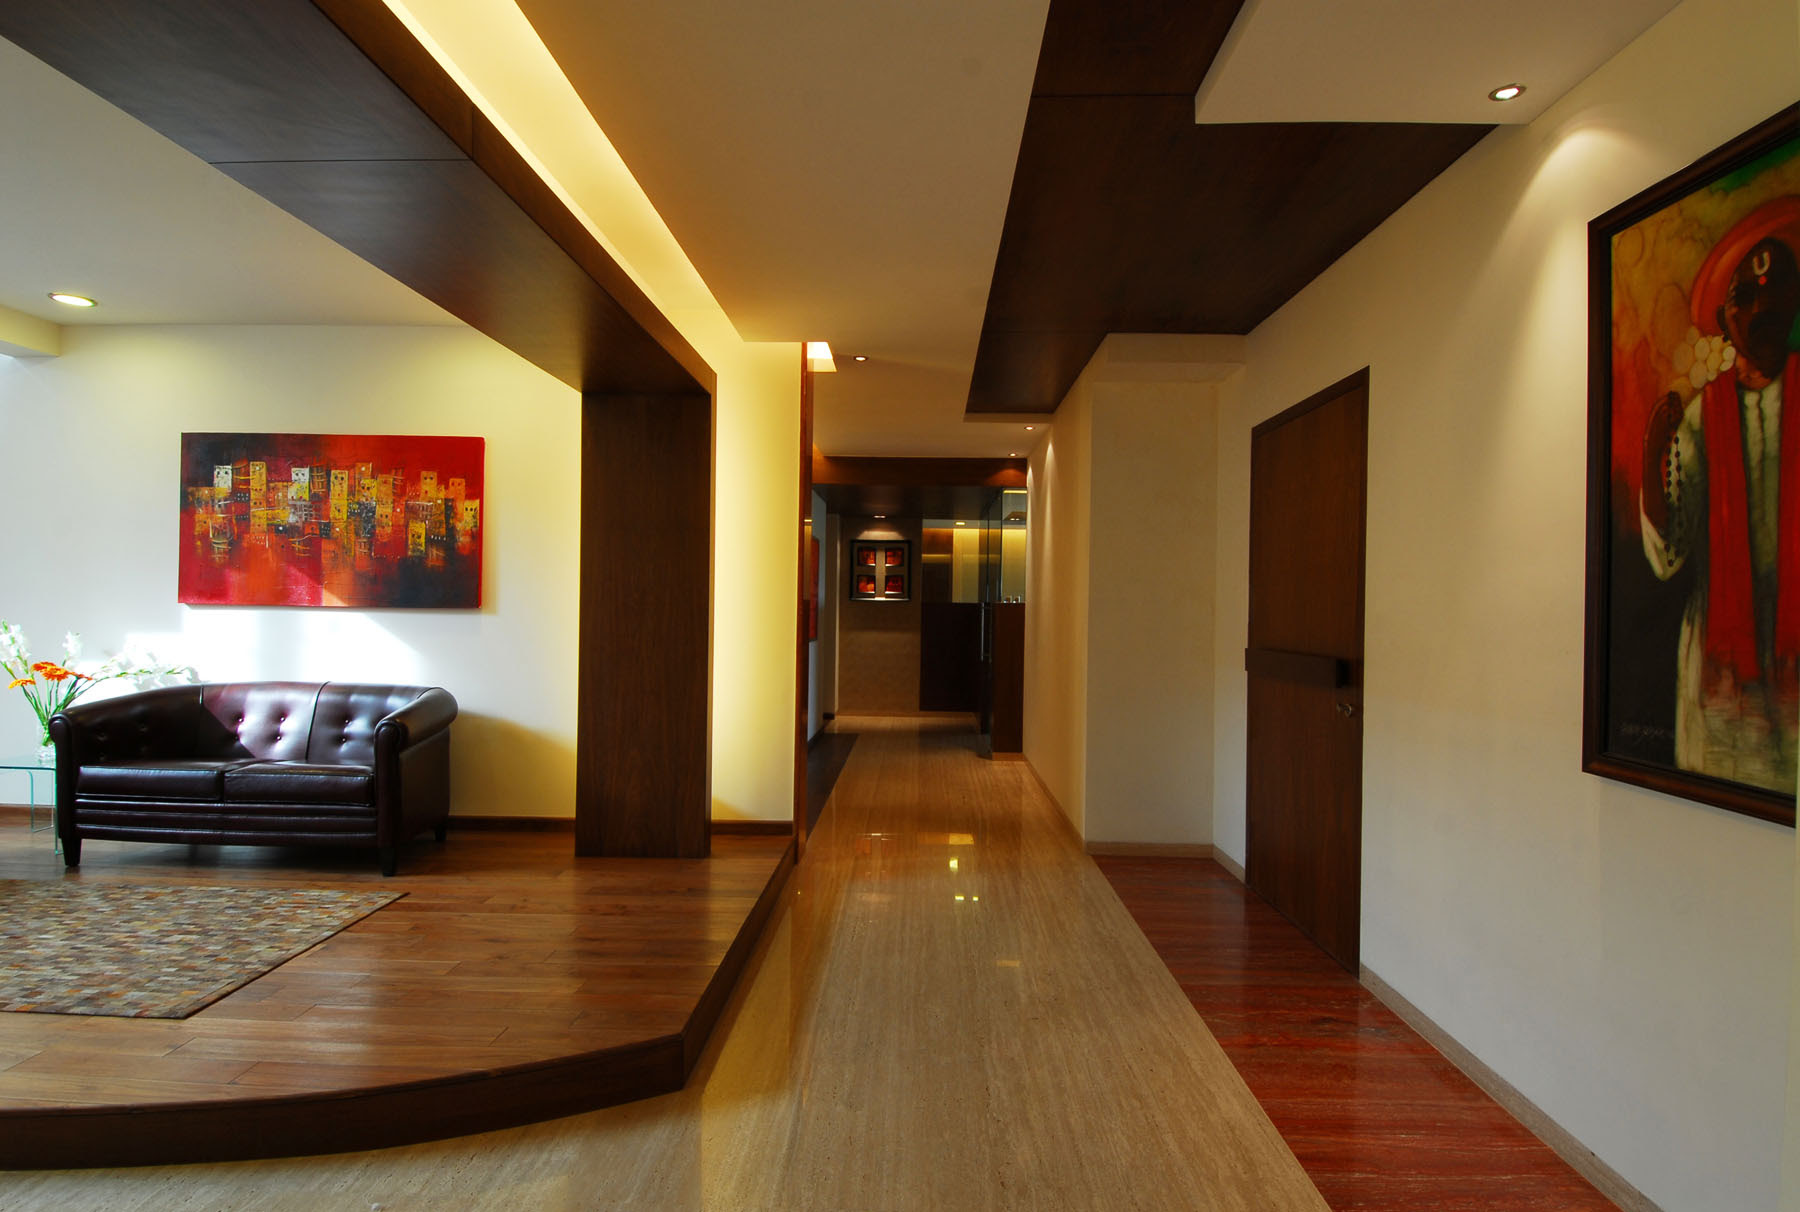 Bangalore Duplex Apartment by ZZ Architects   HomeDSGN, a daily ...